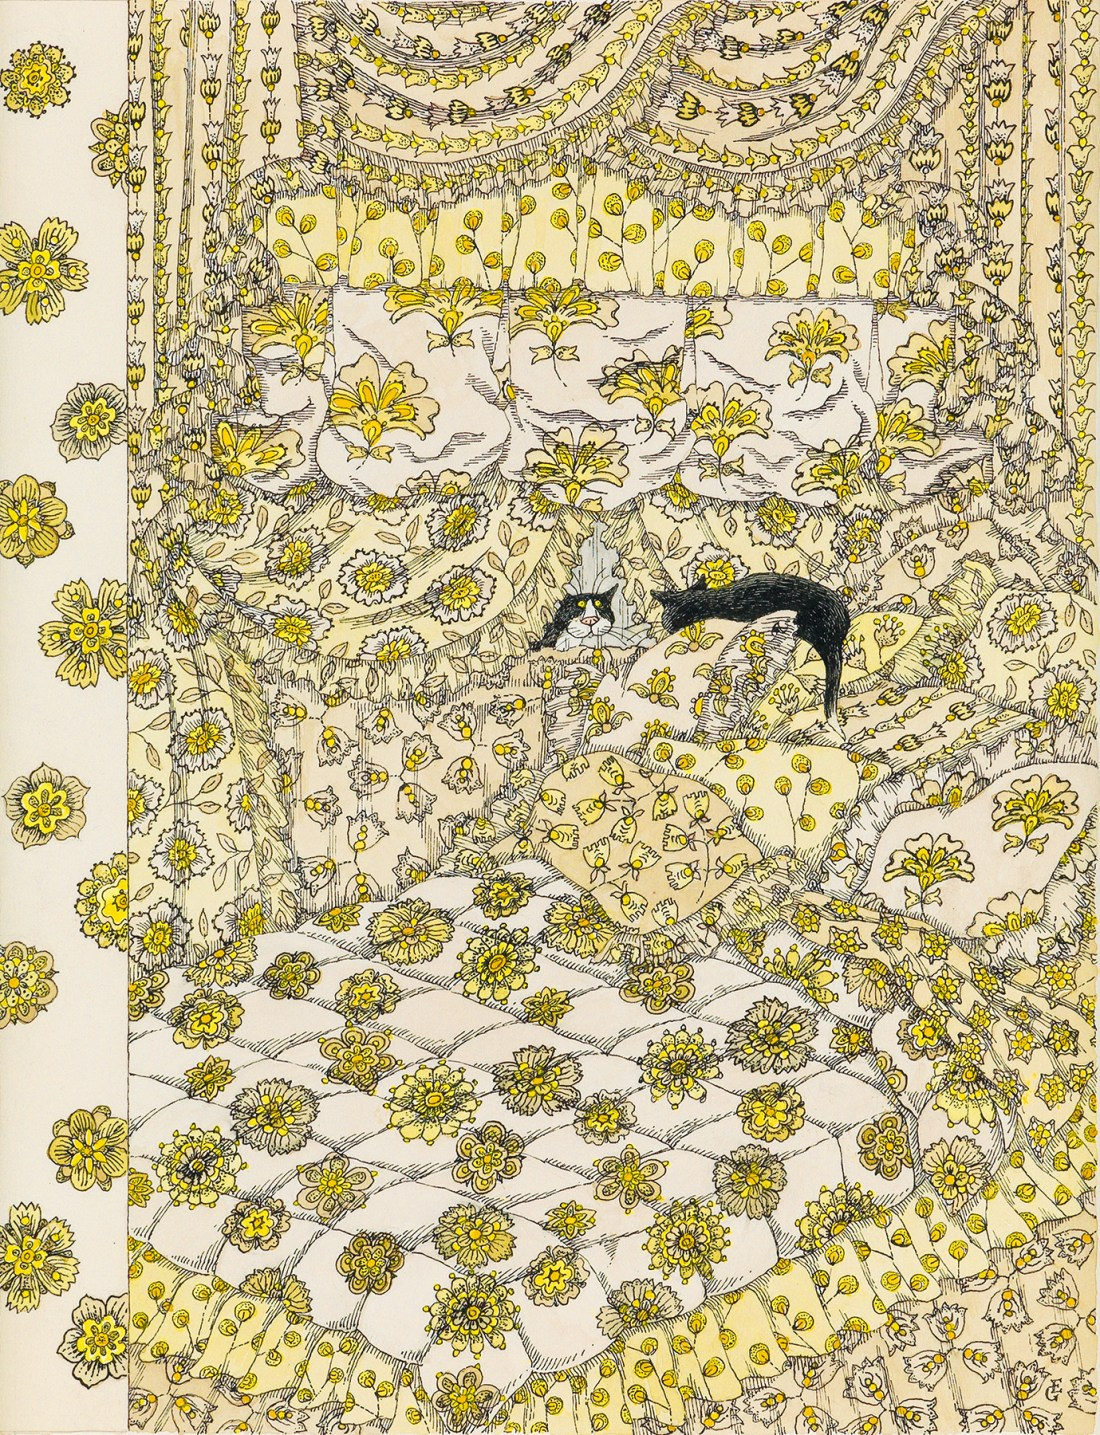 A New Yorker cover by the late Edward Gorey. It depicts two tuxedo cats looking at each other on an oversize bed, fitted with ruffles, shams, and pillows festooned with intricate yellow flowers.